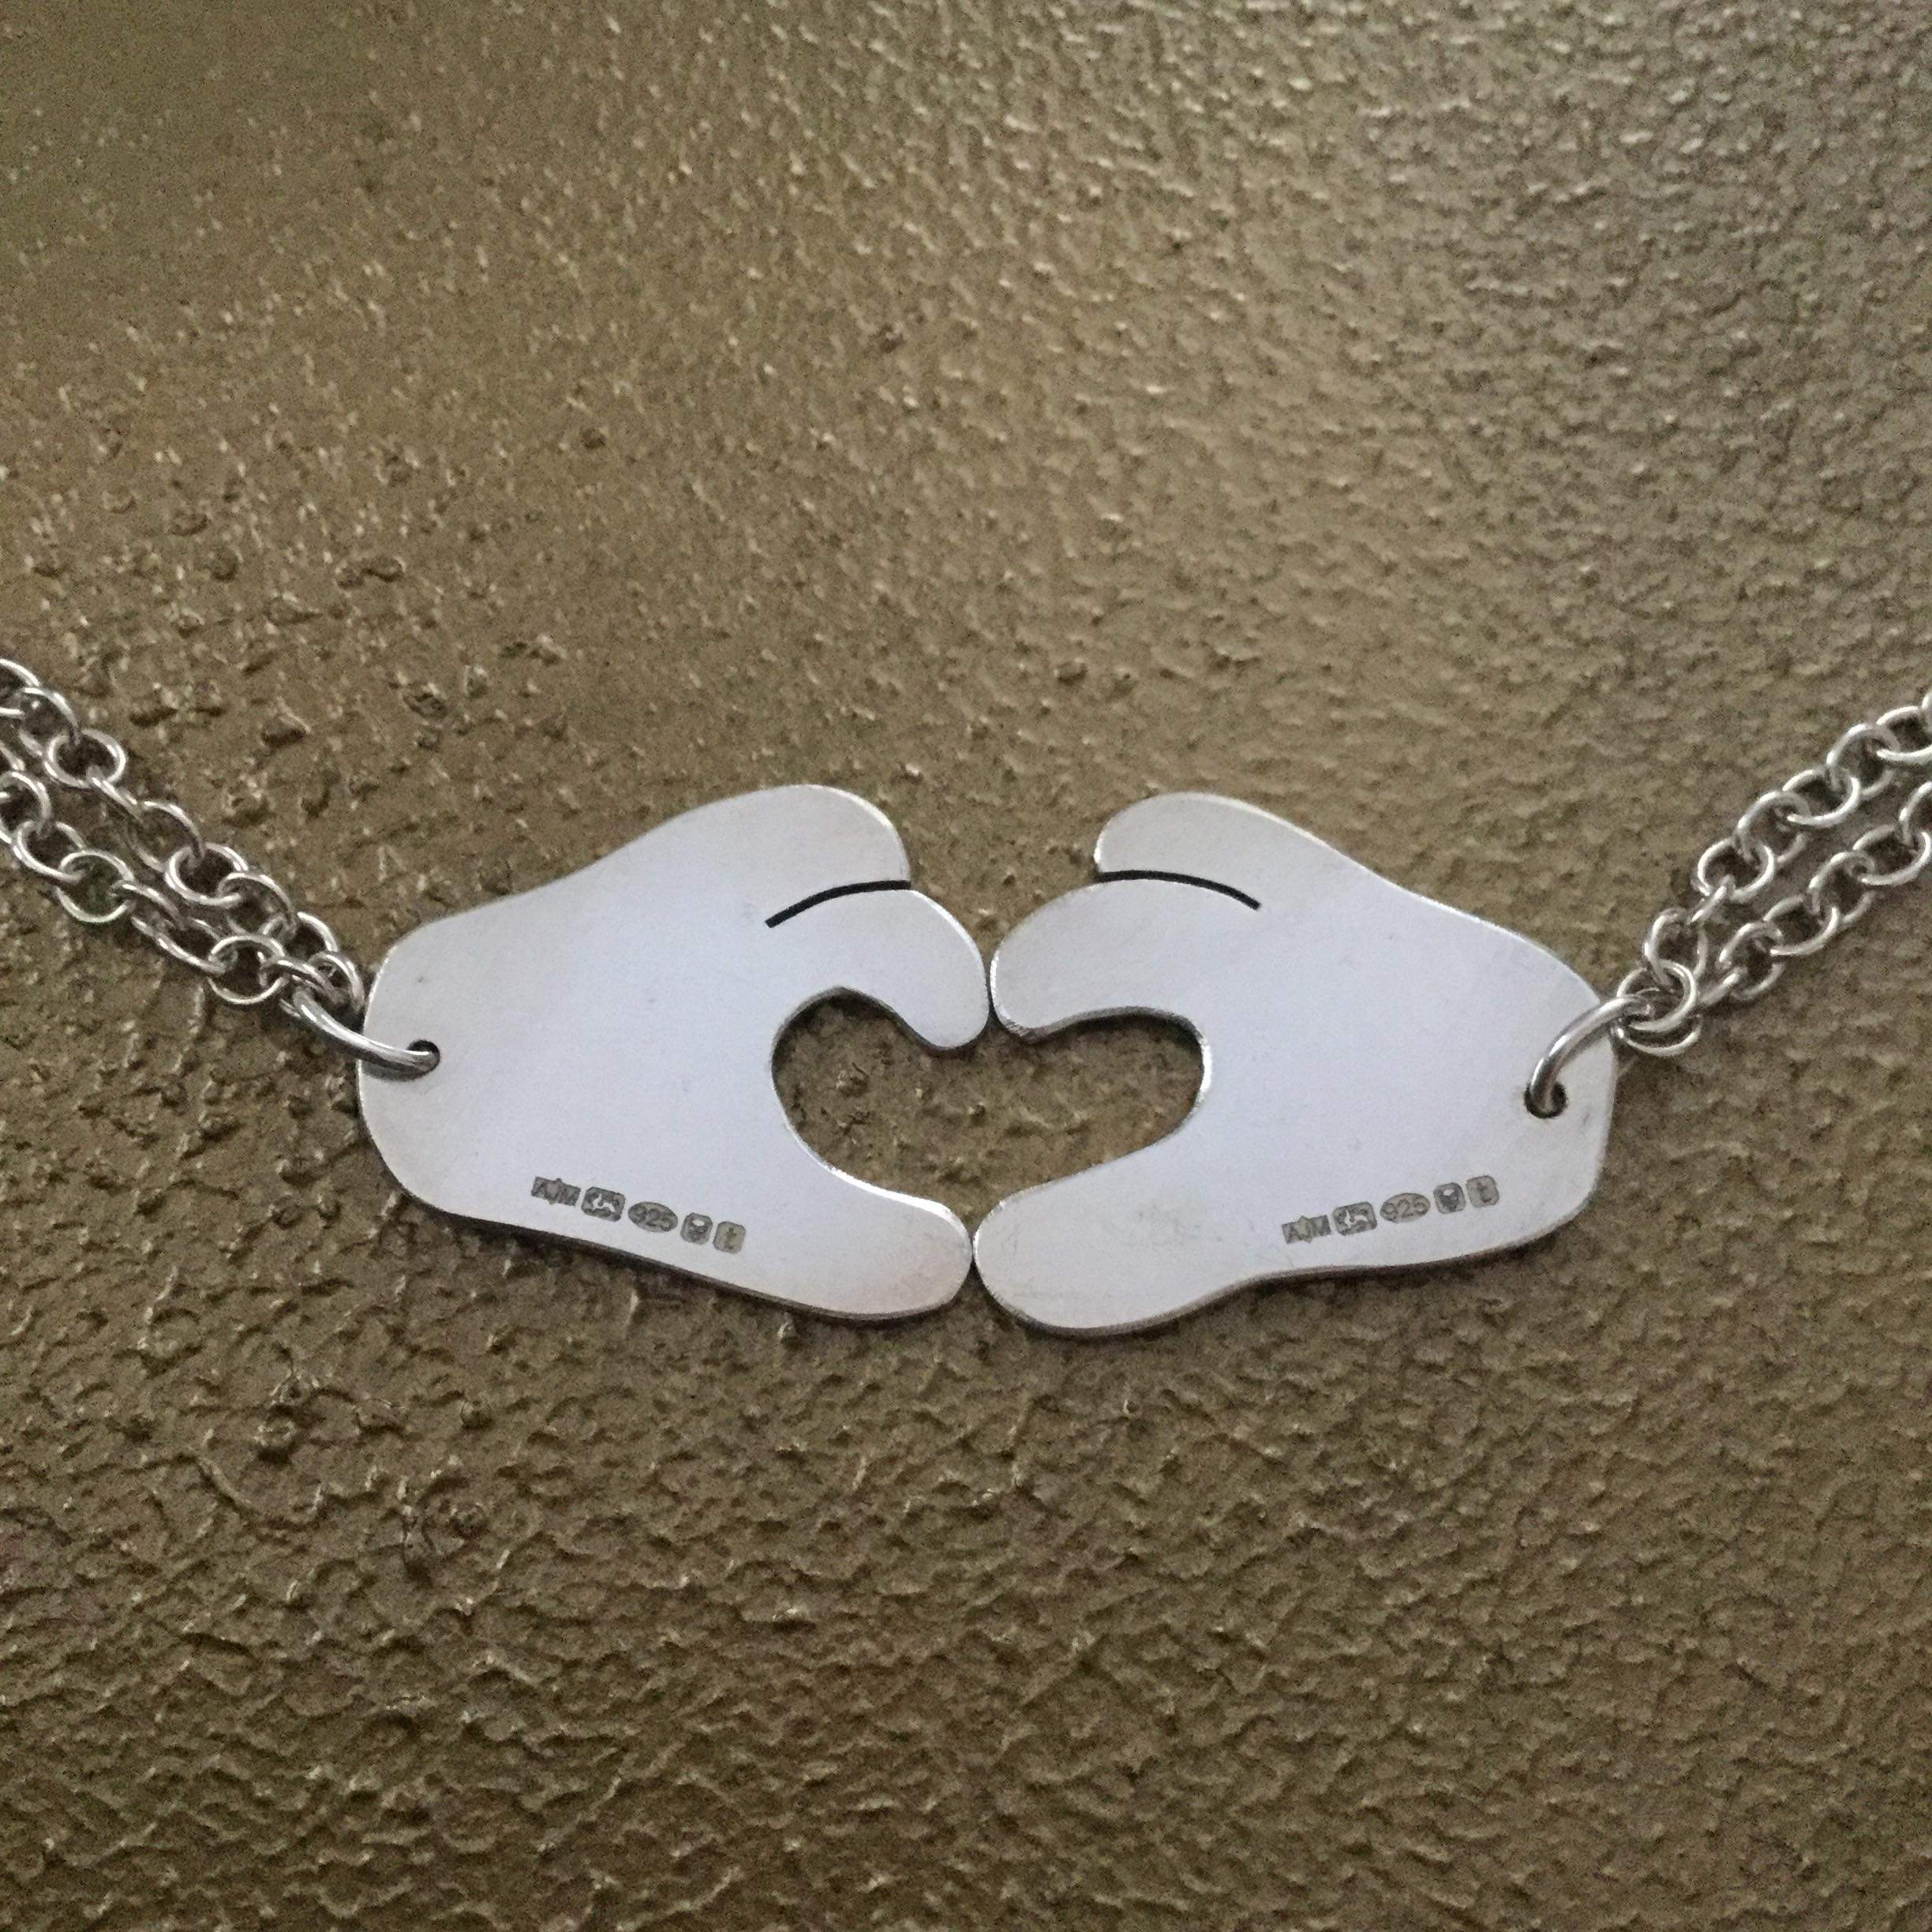 Joining Heart Hands Necklaces Abigail J Marsh